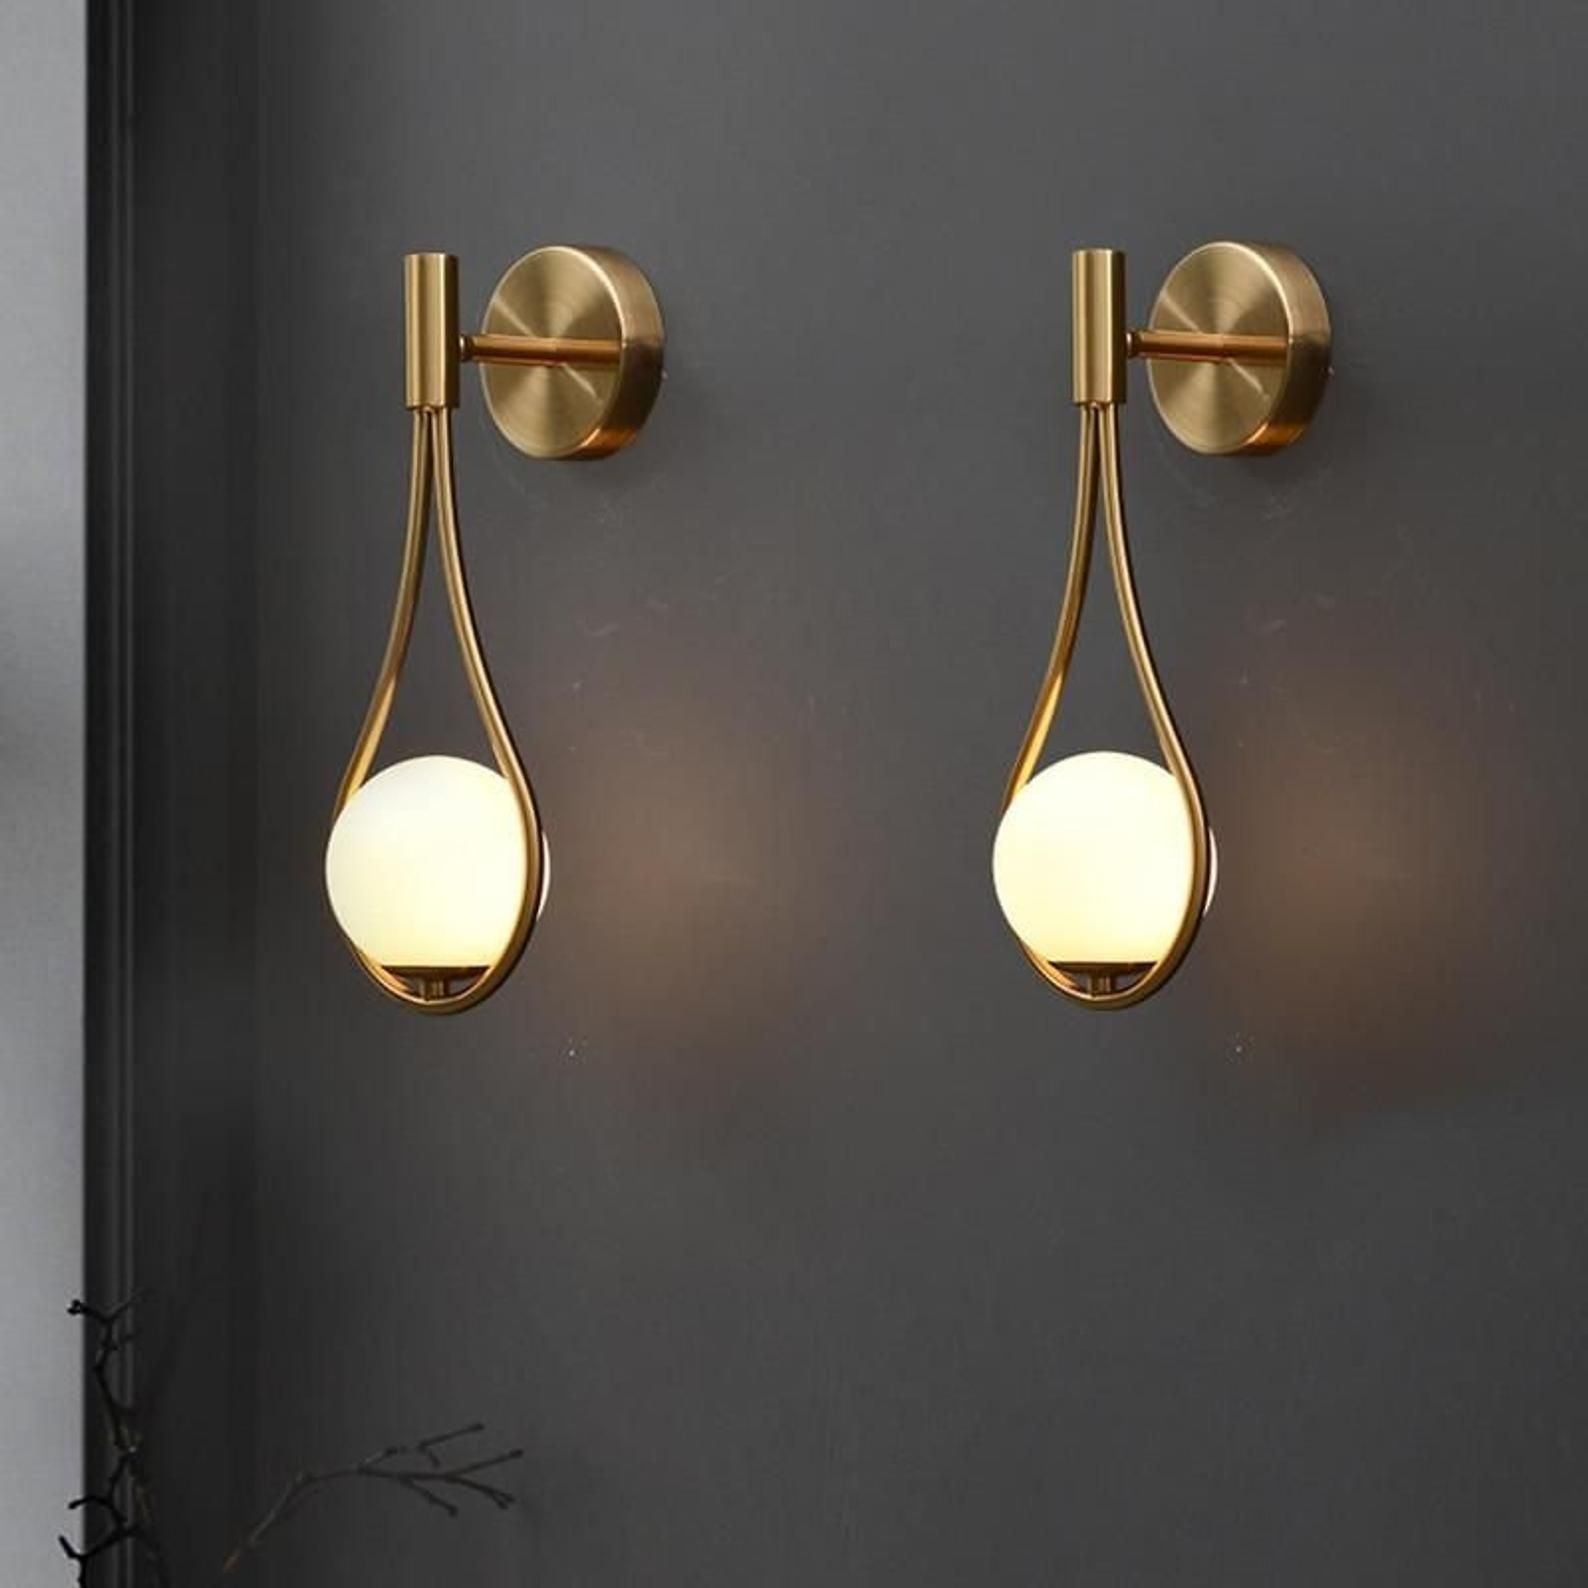 Wall Sconce Handmade Elegant Design Minimalist For Home Wall Etsy Wall Lamps Bedroom Metal Wall Lamp Brass Wall Lamp